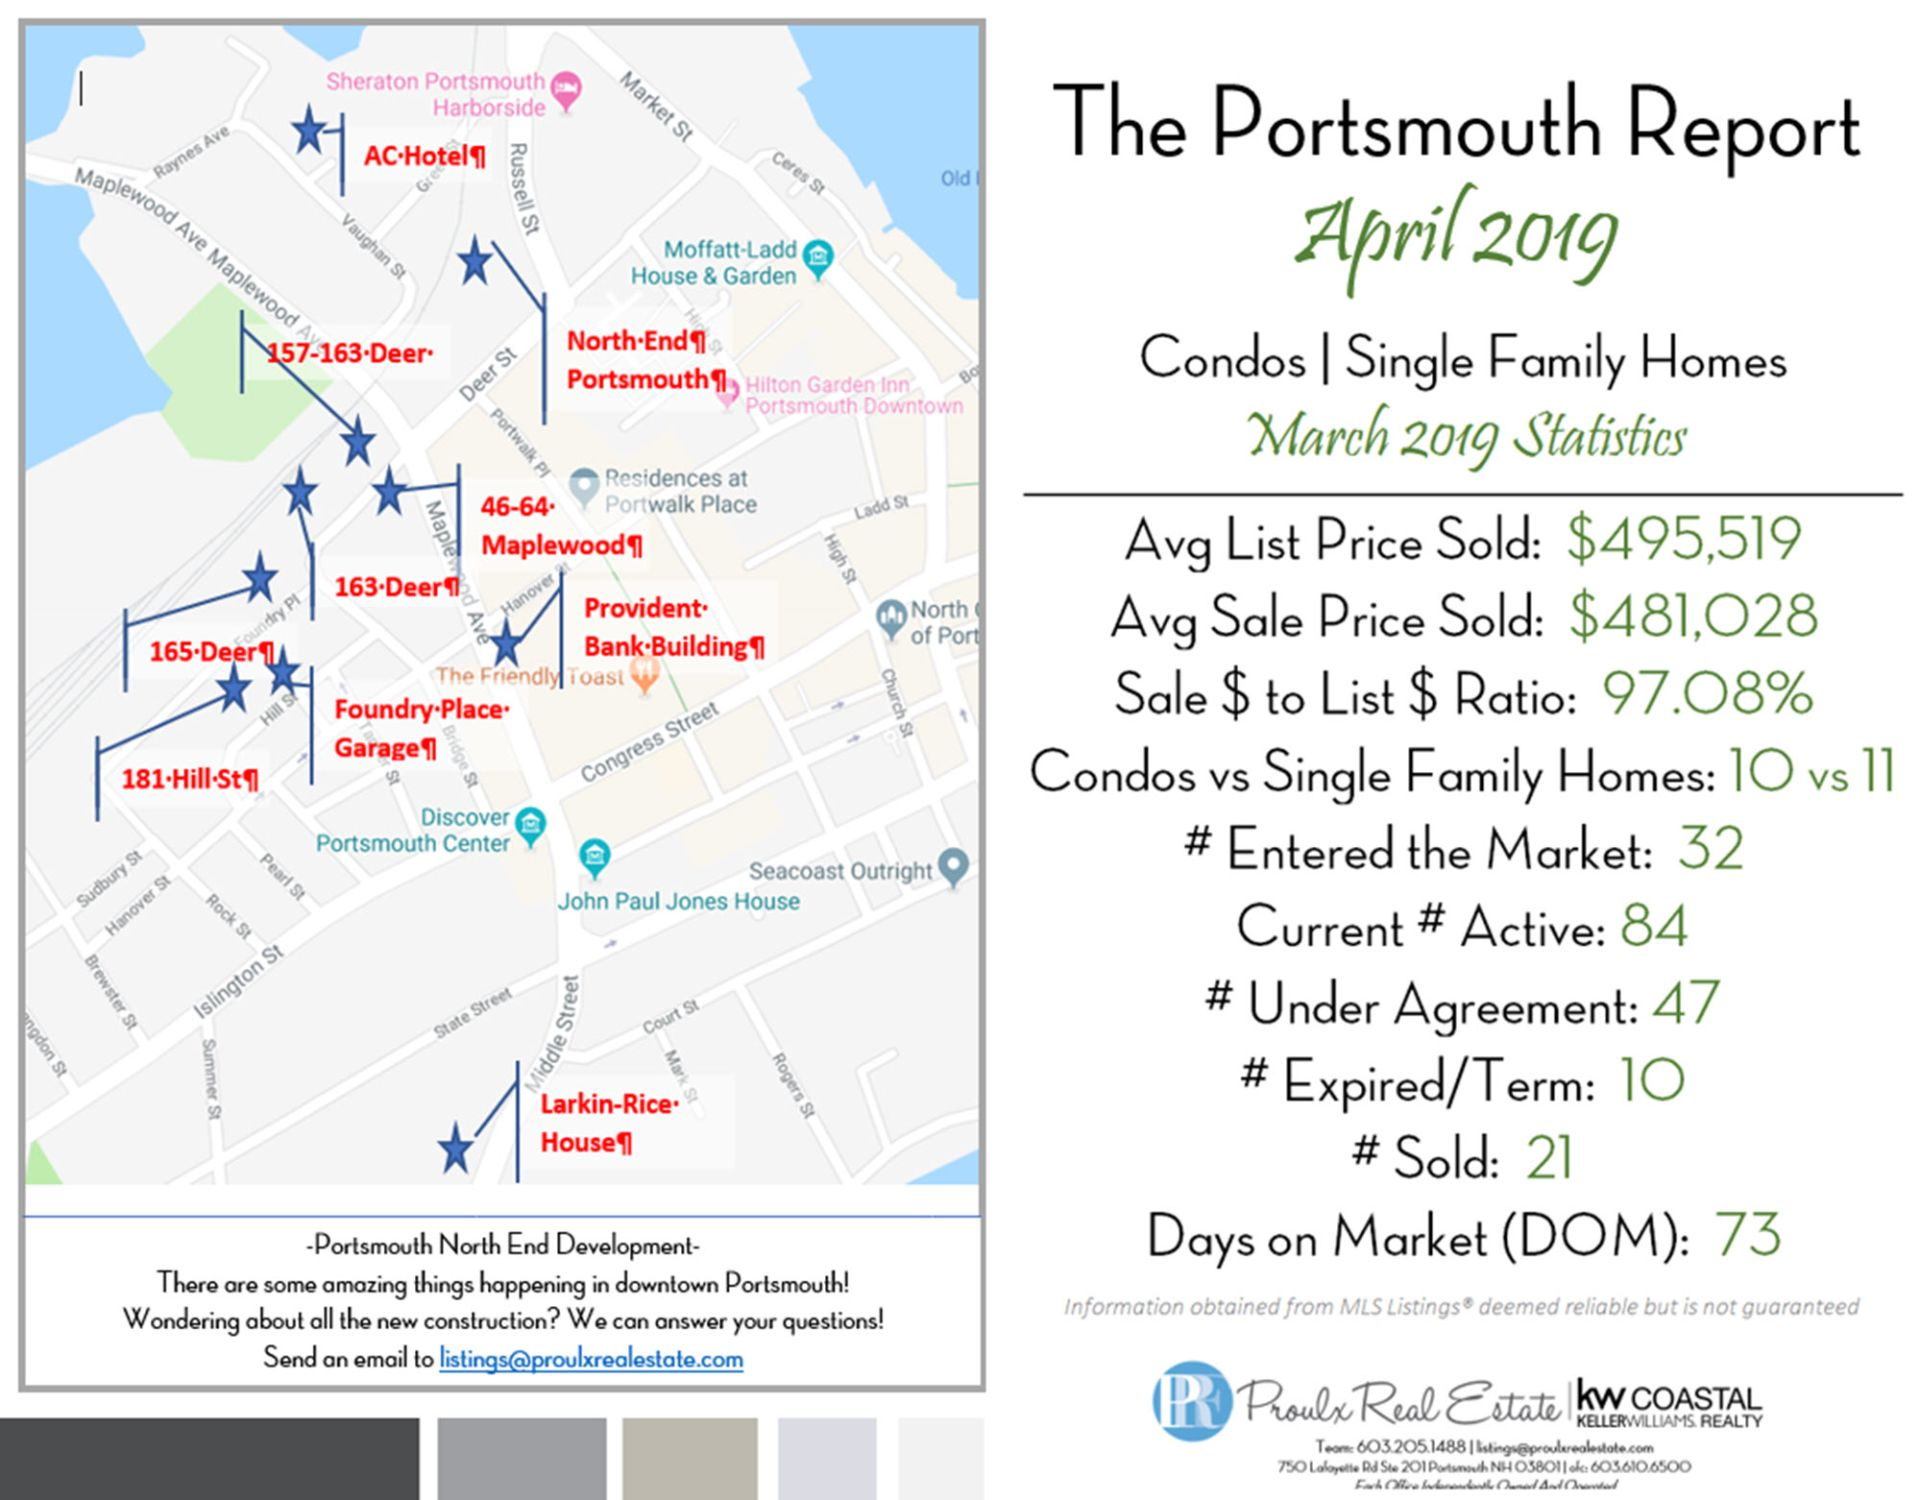 The Portsmouth Report April 2019